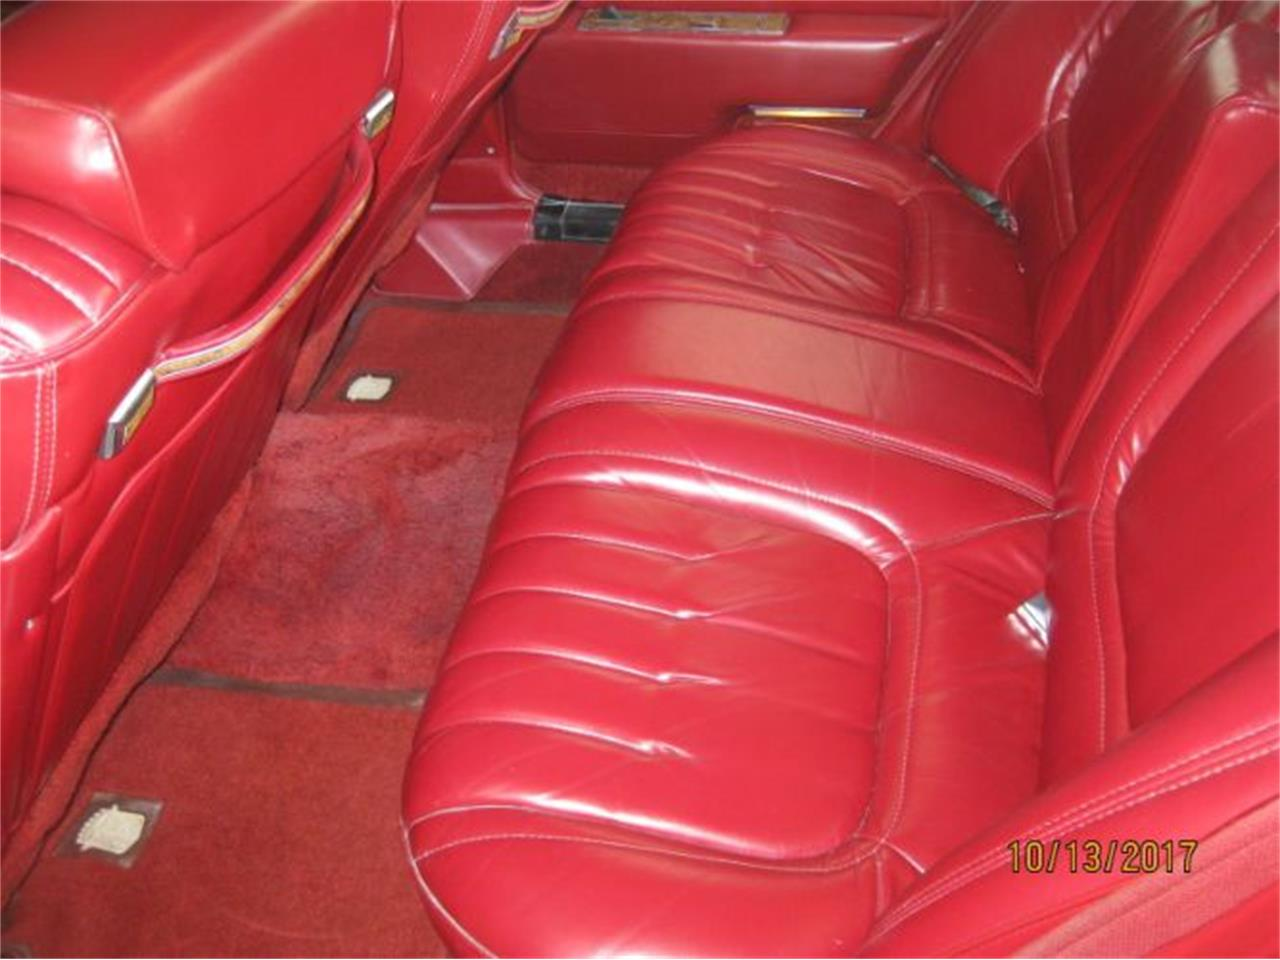 1979 Cadillac Seville for sale in Cadillac, MI – photo 16